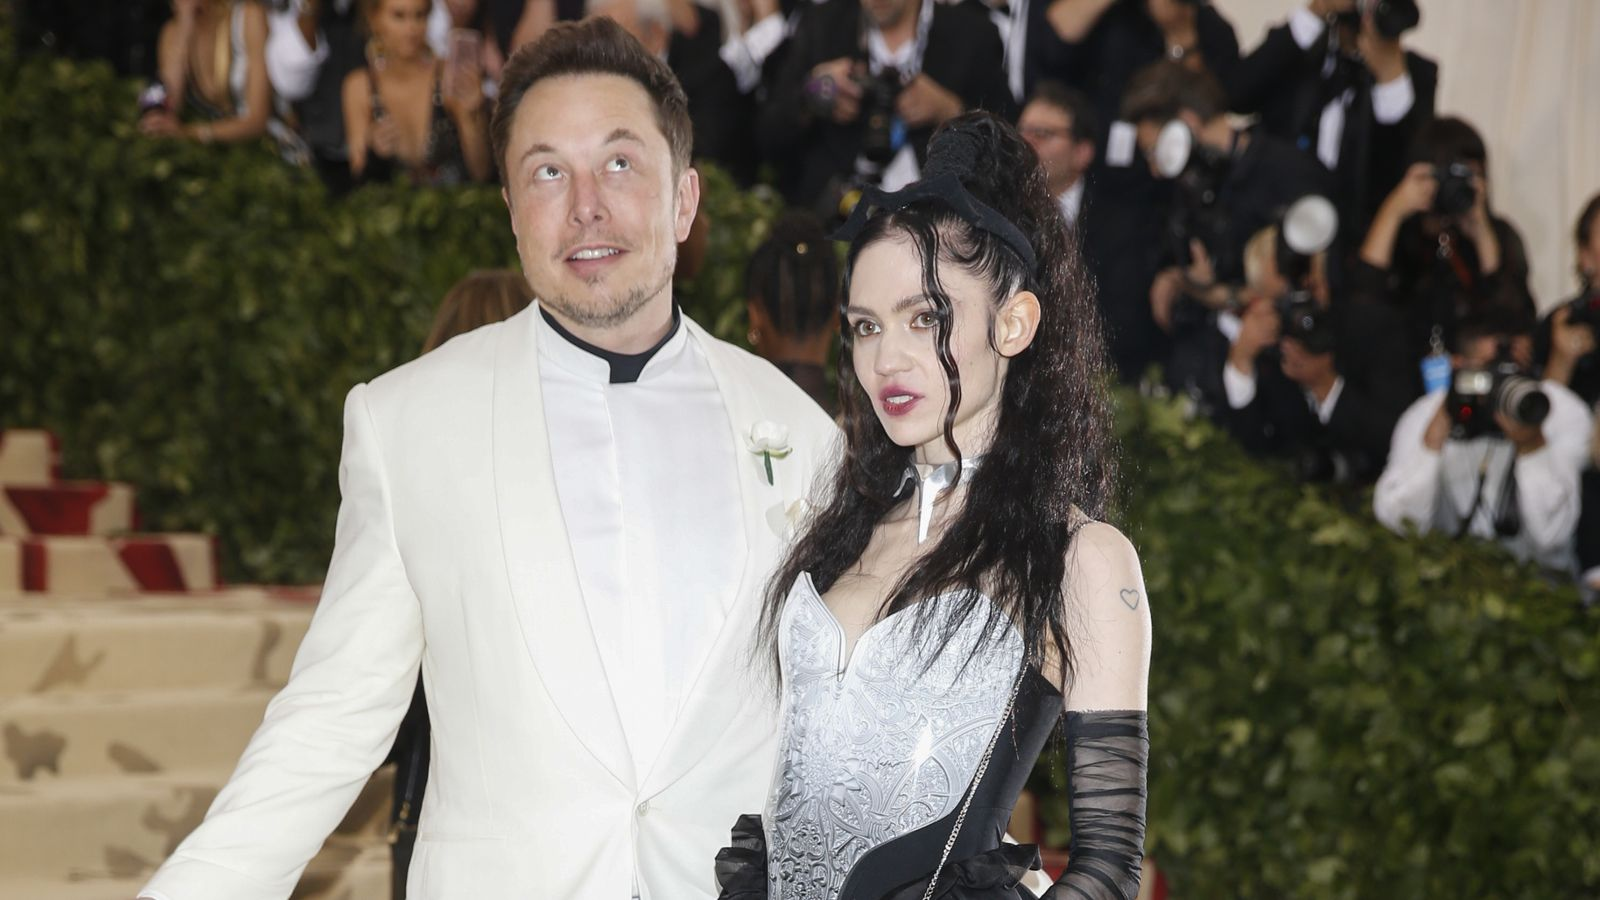 Elon Musk and Grimes split up after three years together but 'remain on great terms'